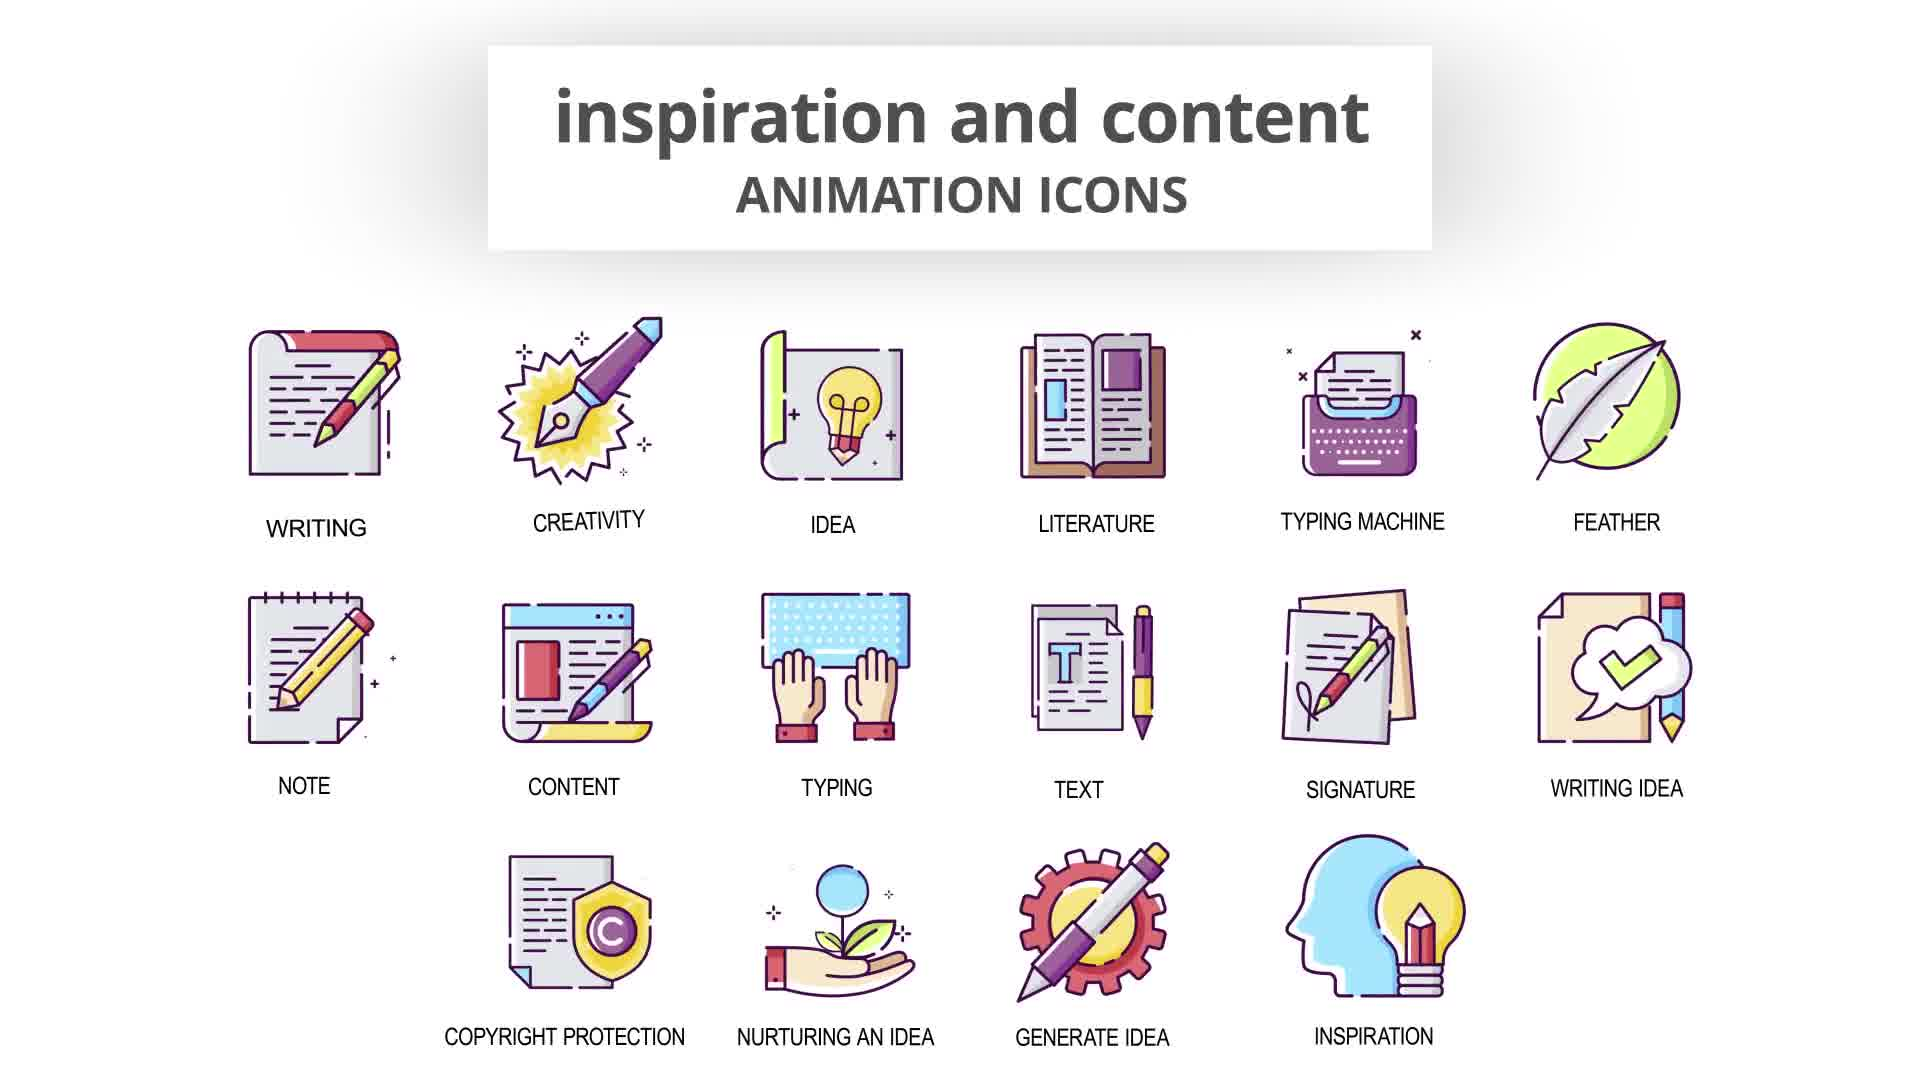 Inspiration & Content Animation Icons Videohive 30041554 After Effects Image 10